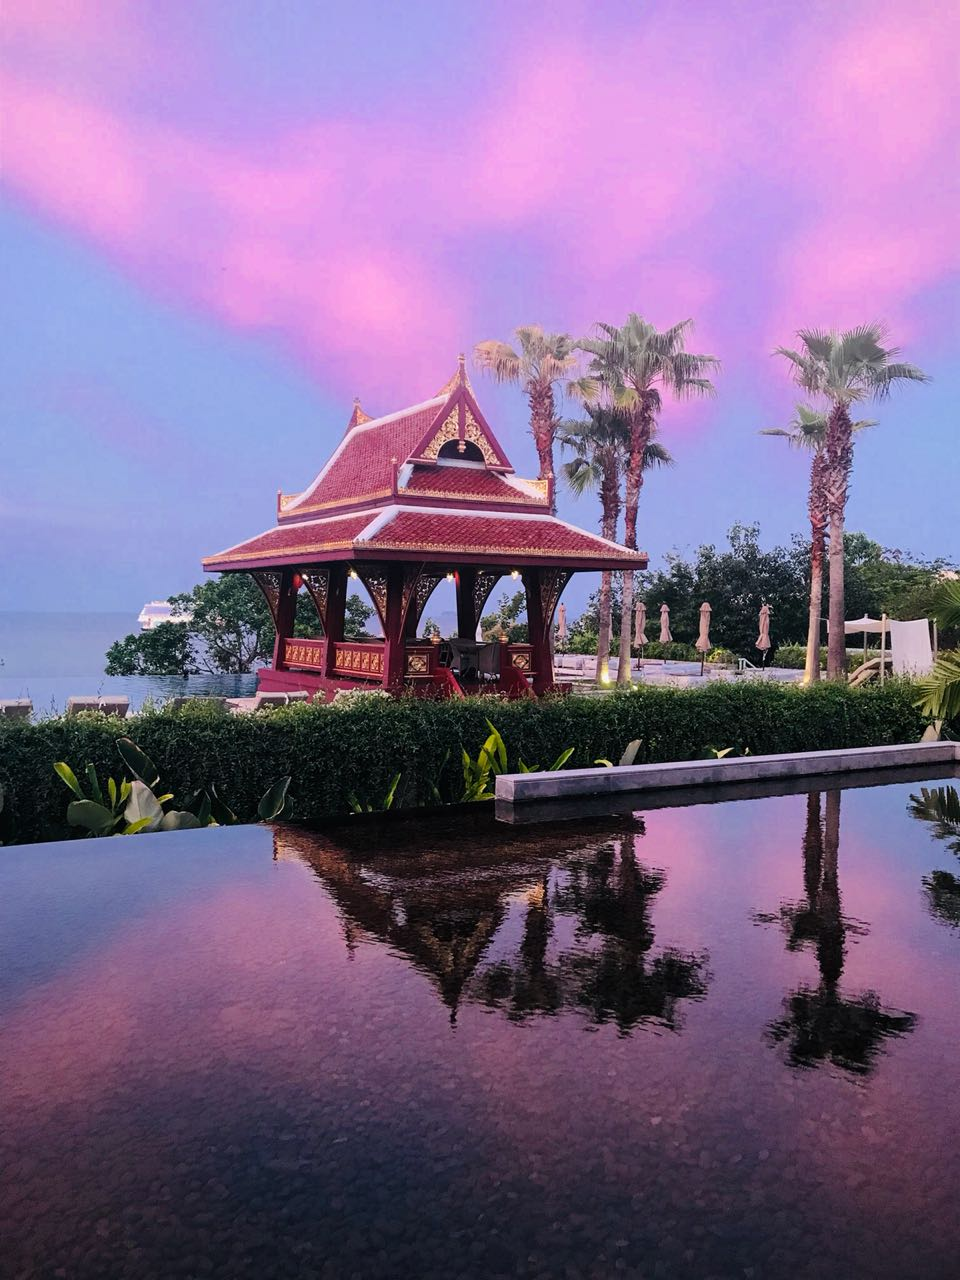 Sky colors at Amatara resort